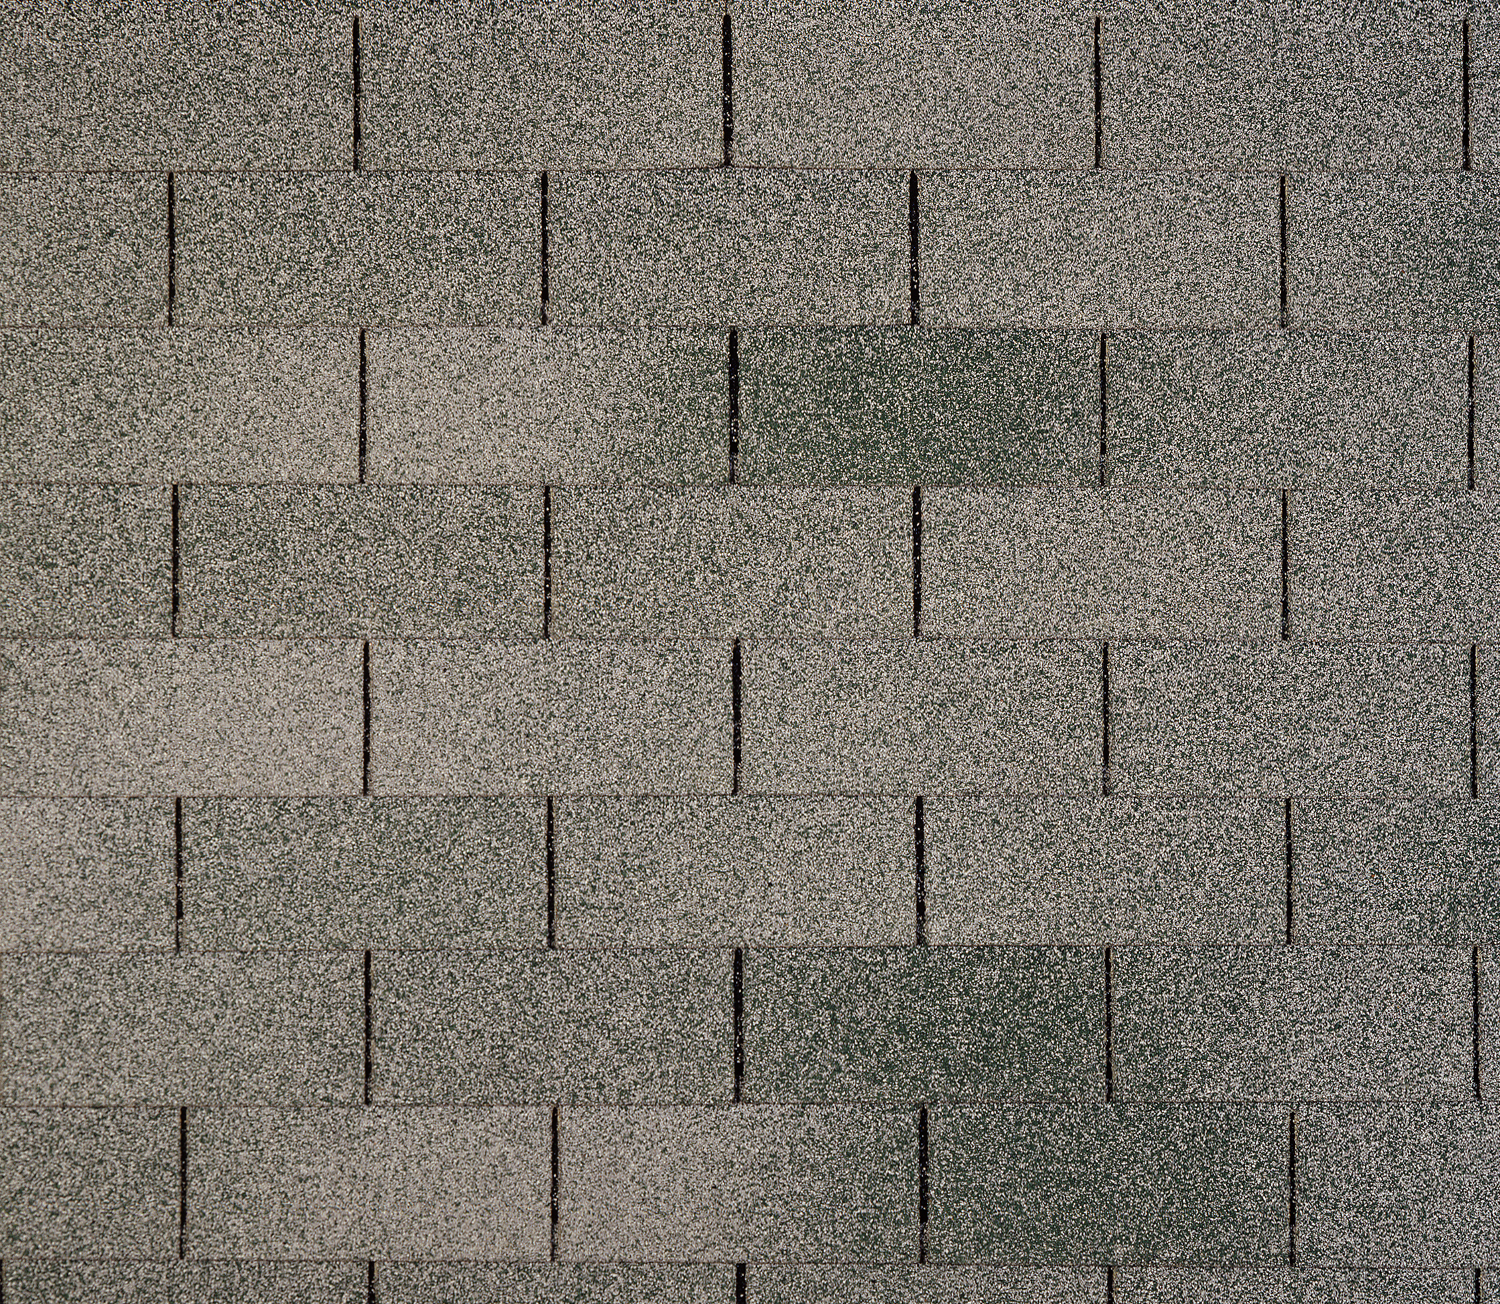 Shingle Style And Colors Broward Roofing Supply Of